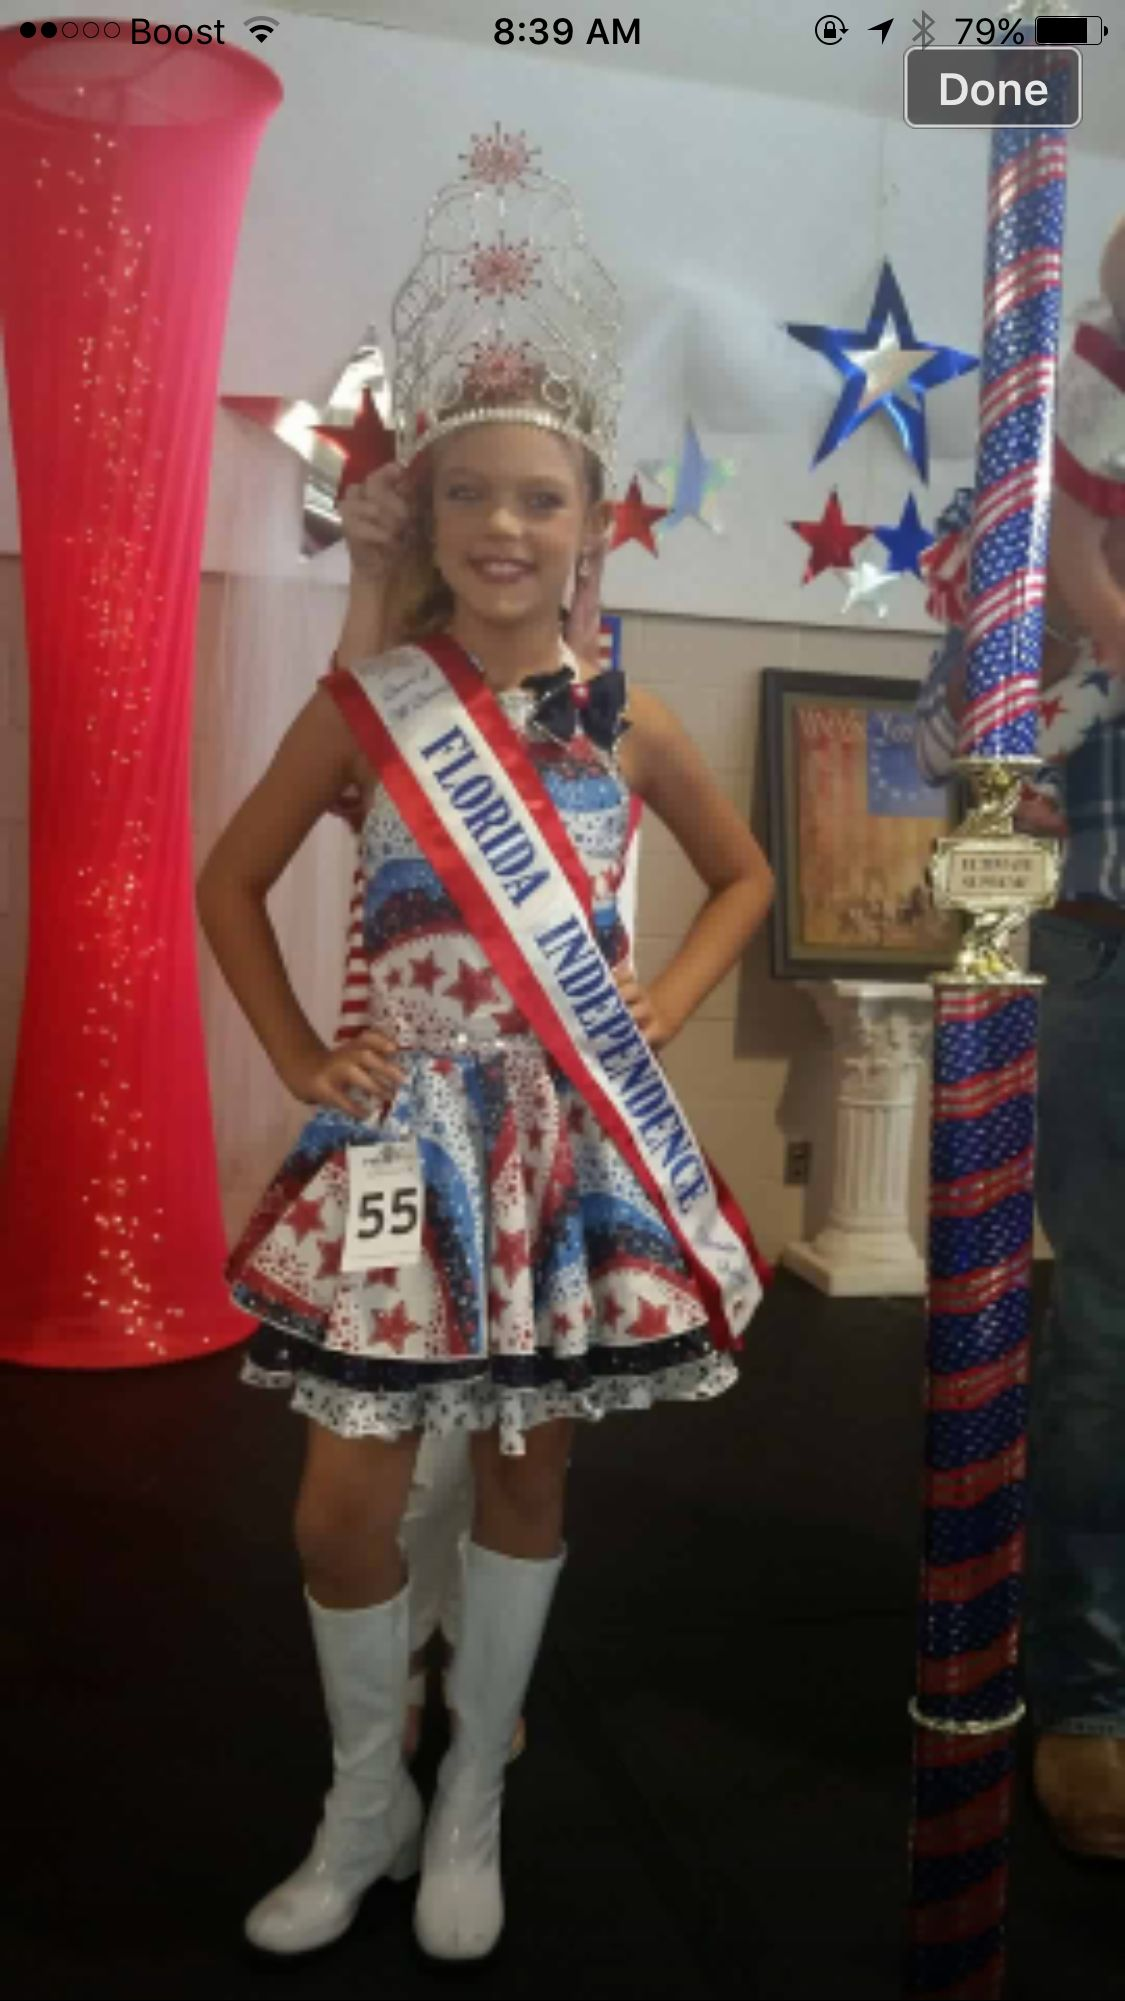 National Pageant Patriotic Casual Wear winner. Facebook:  Paulina's Pageant Designs